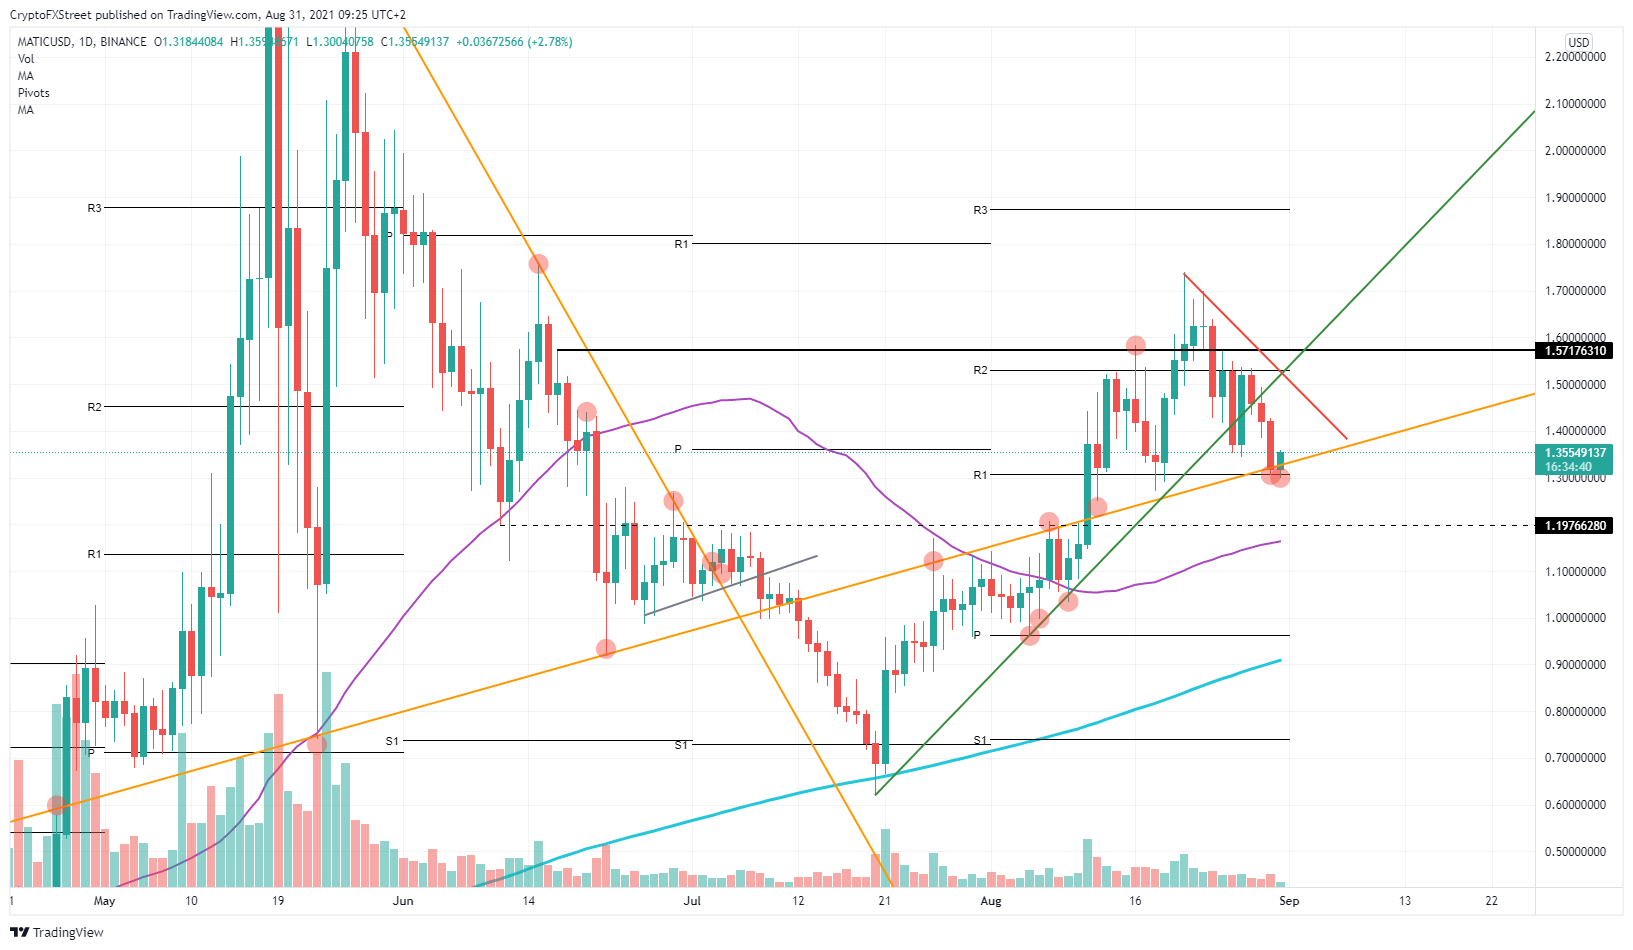 MATIC/USD daily chart